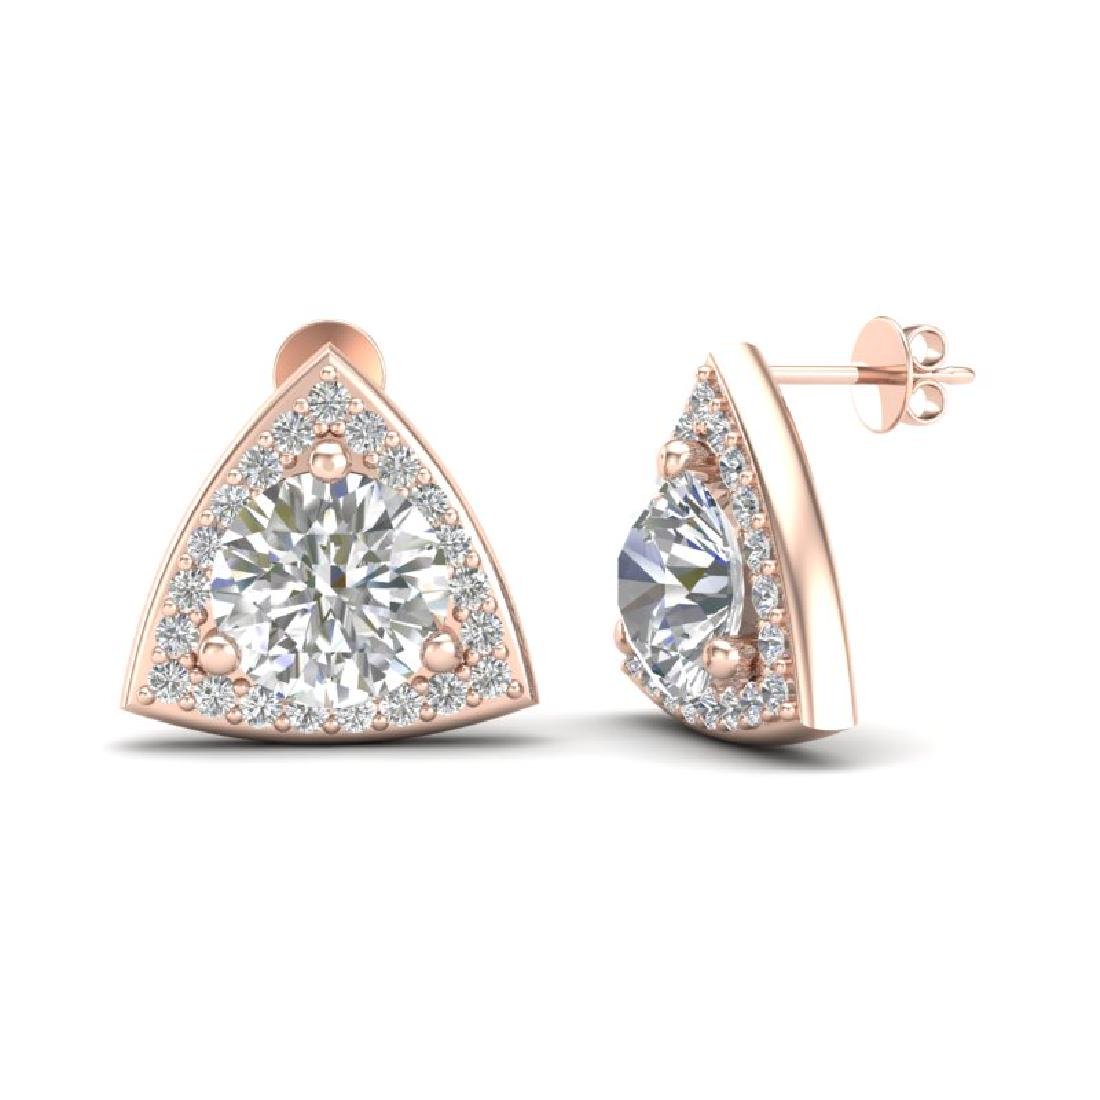 3 CTW VS/SI Diamond Stud Earrings 14K Rose Gold - 2